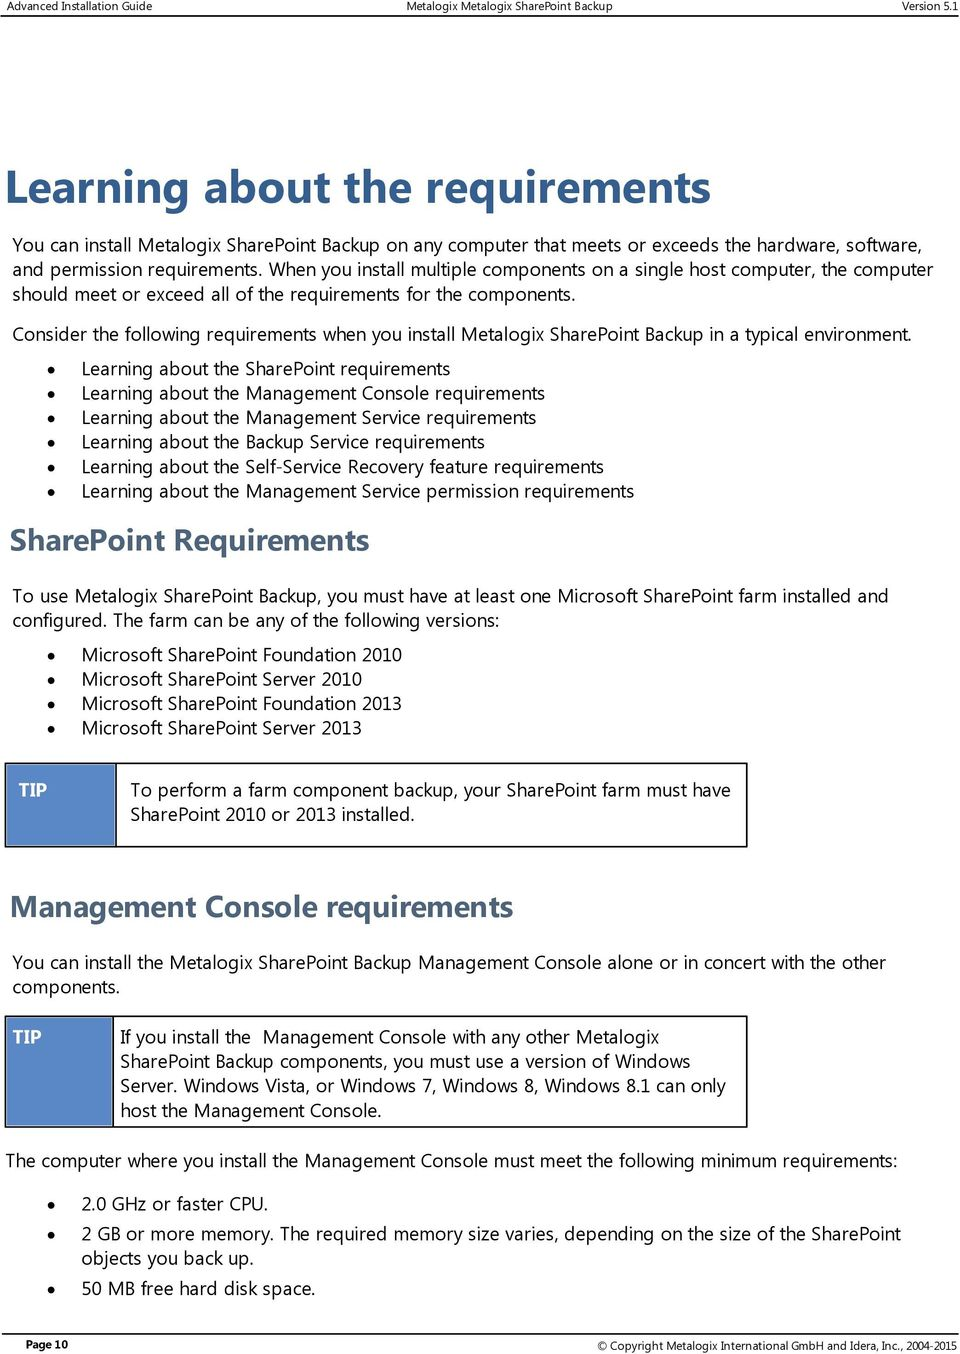 Consider the following requirements when you install Metalogix SharePoint Backup in a typical environment.